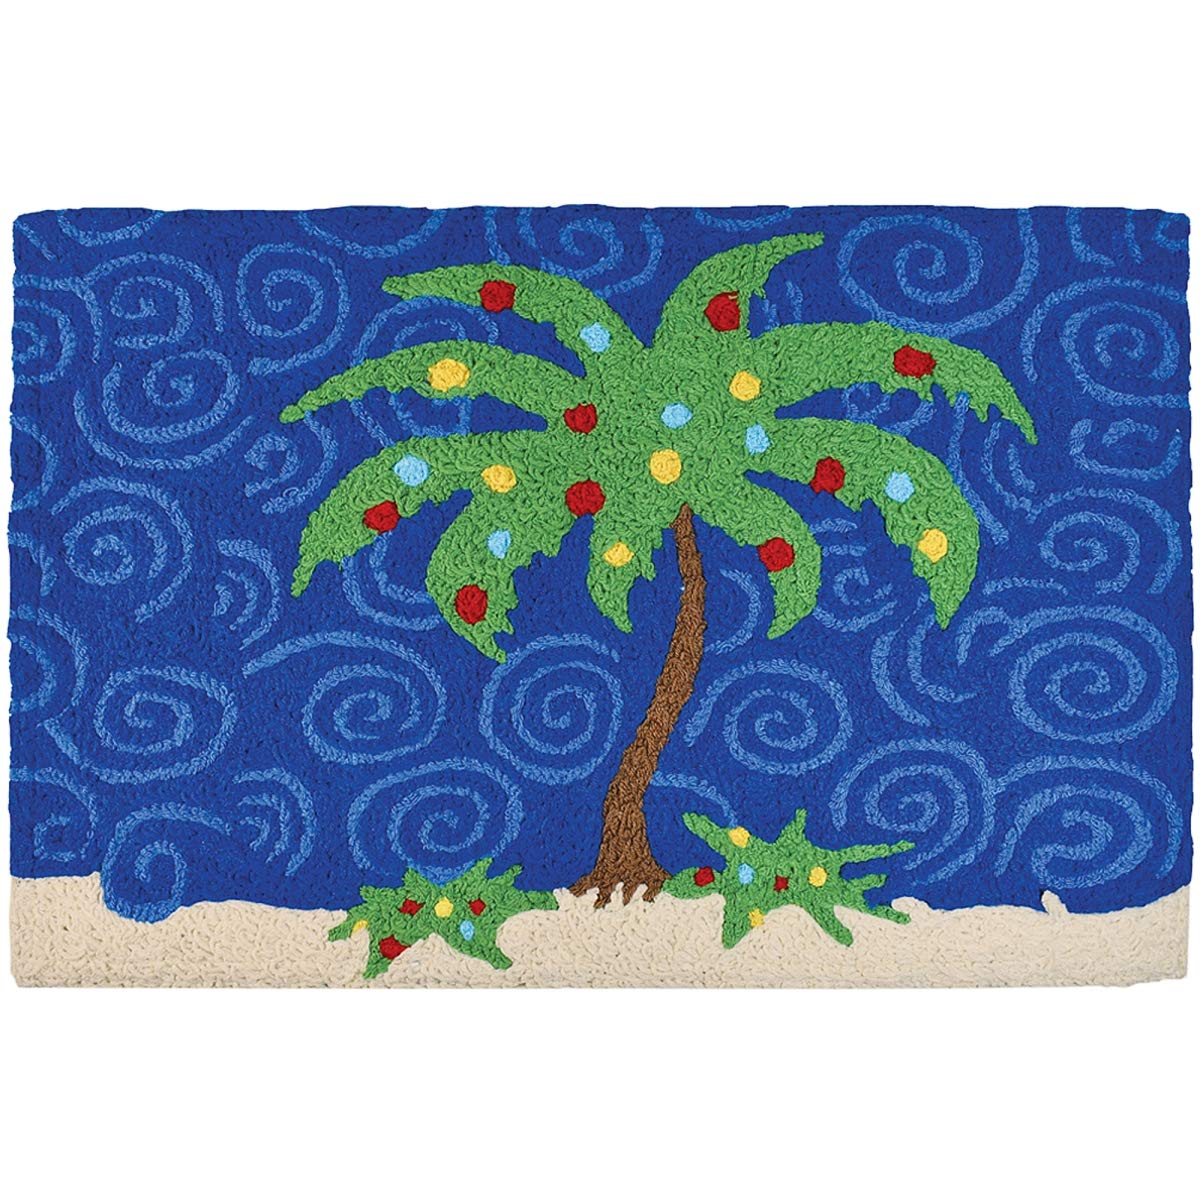 Don't miss the campaign Jellybean Holiday Palm Tree Polyester Indoor Rug for Max 41% OFF Outdoor Use